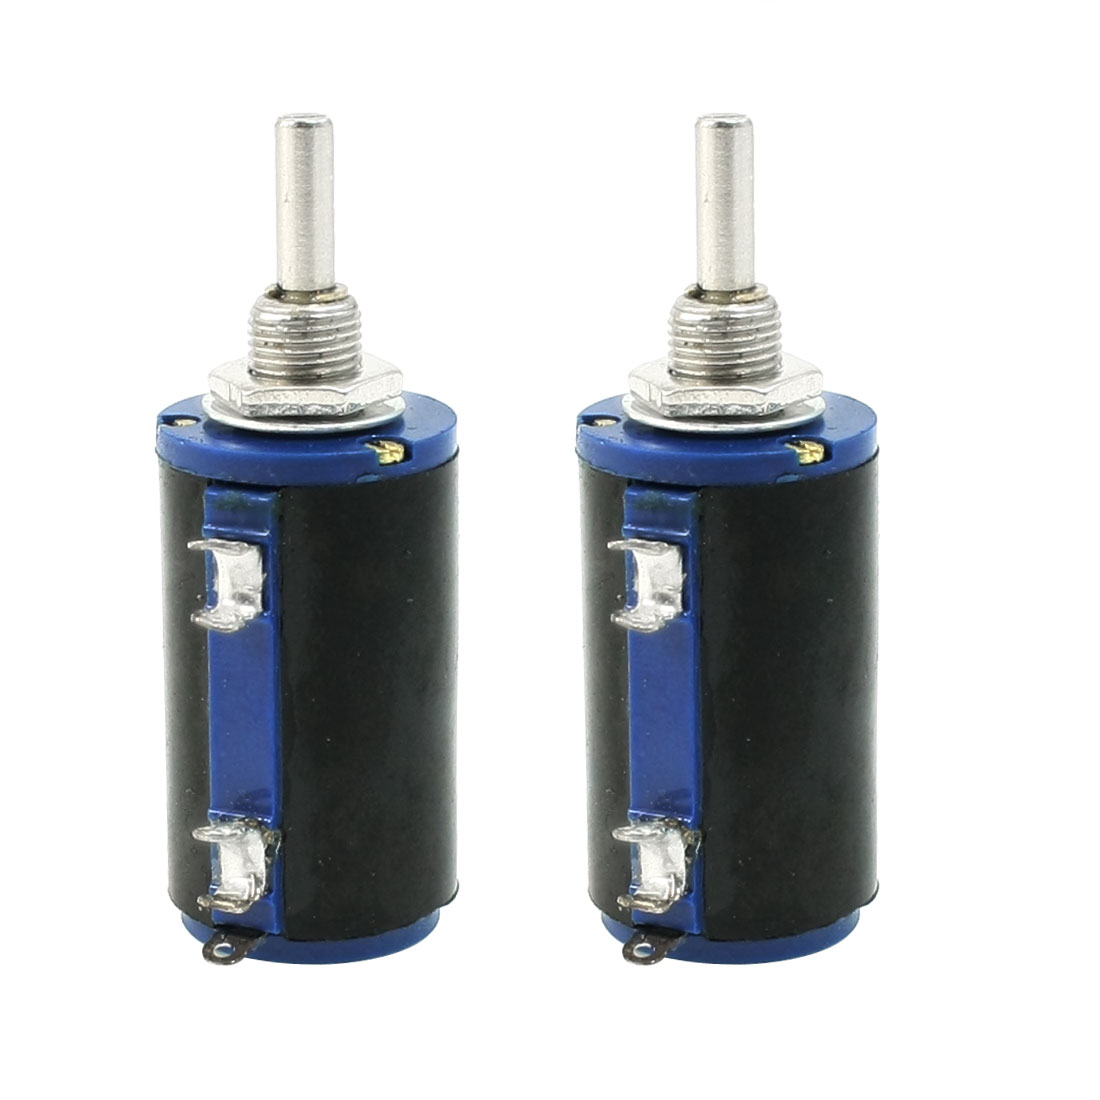 WXD3-13 2W 10K ohm Multi Turn Wirewound Potentiometers Pot 2 Pcs